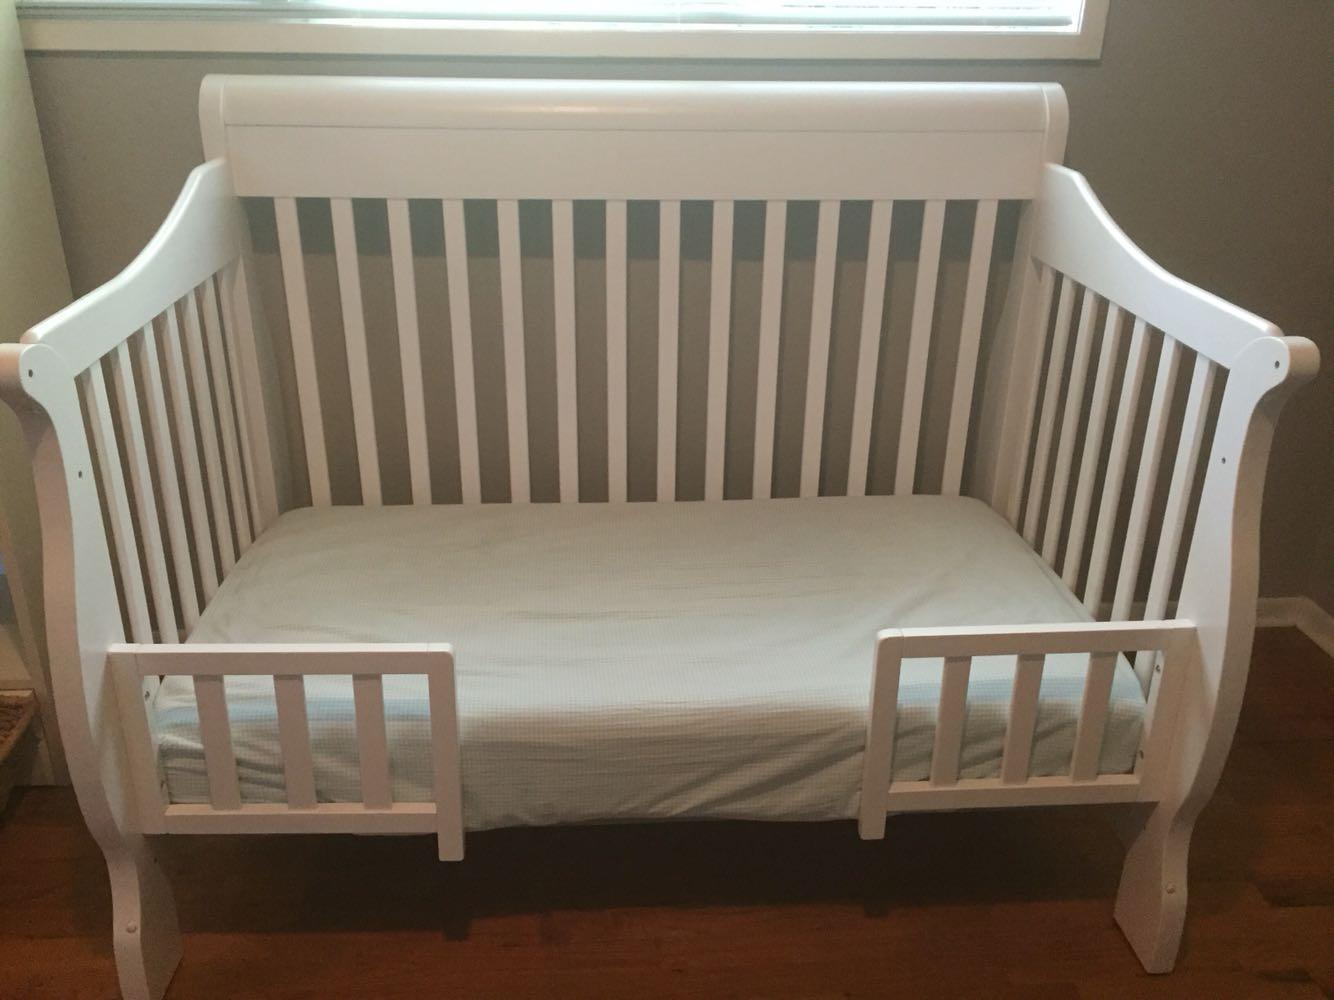 Crib for sale victoria bc - Find More Bily Sydney Crib And Toddler Bed For Sale At Up To 90 Off Victoria Bc